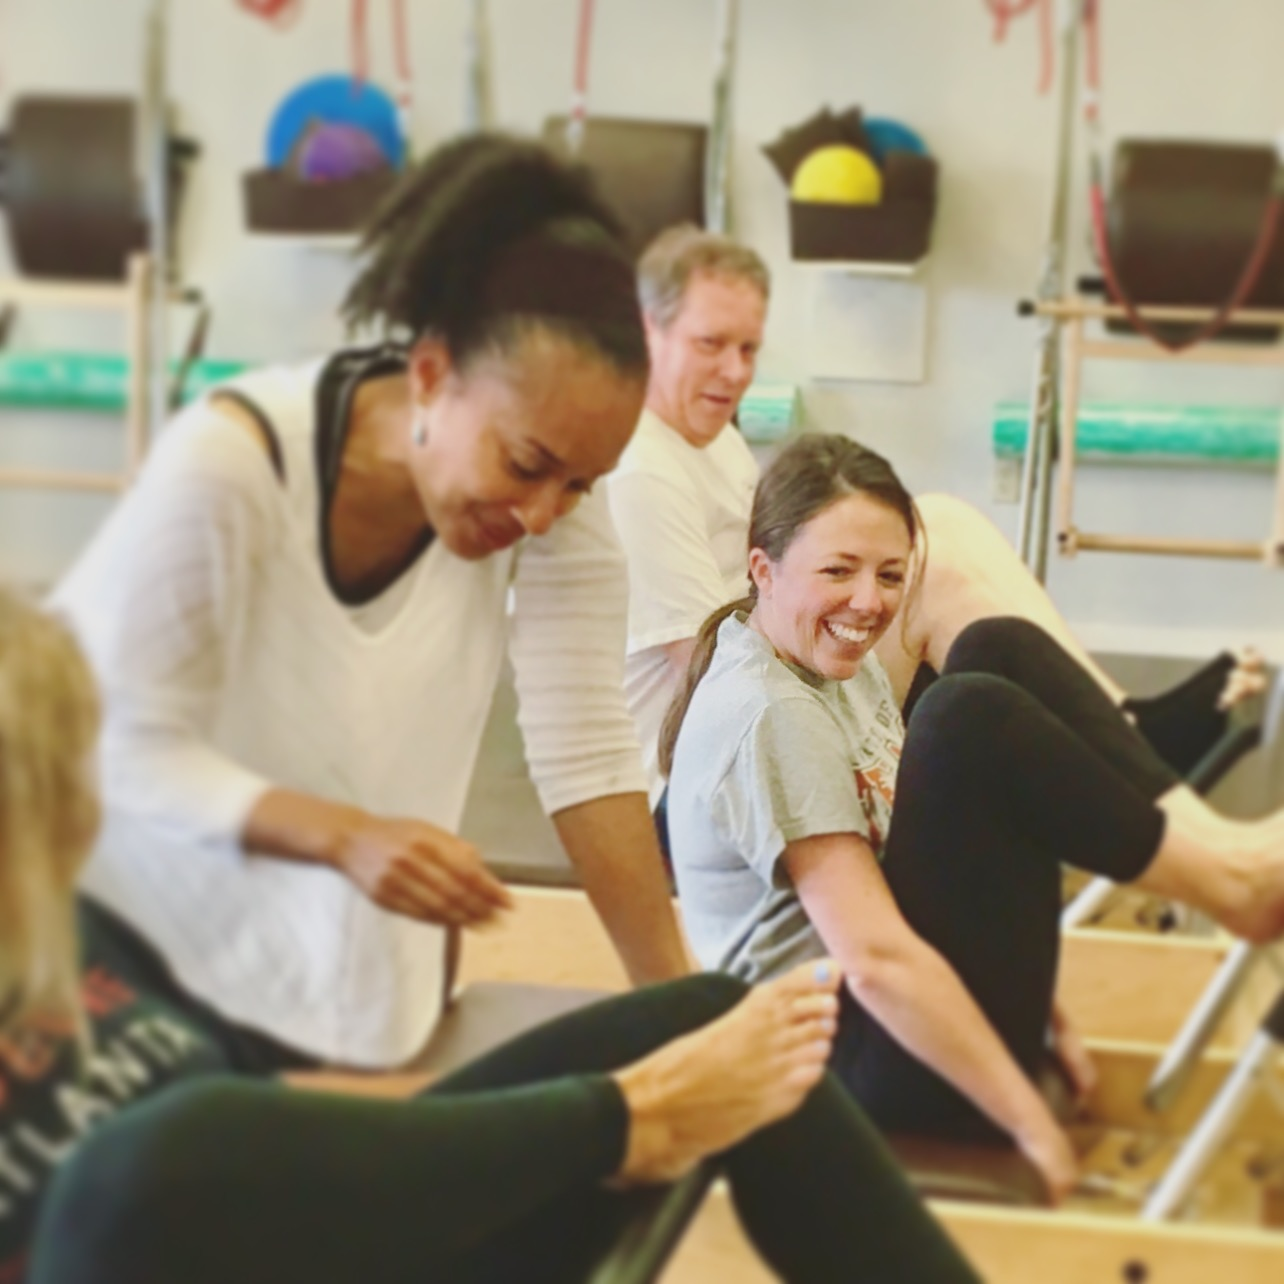 Smiling Pilates semi-private client with expert CORE Buckhead instructor Kimberly